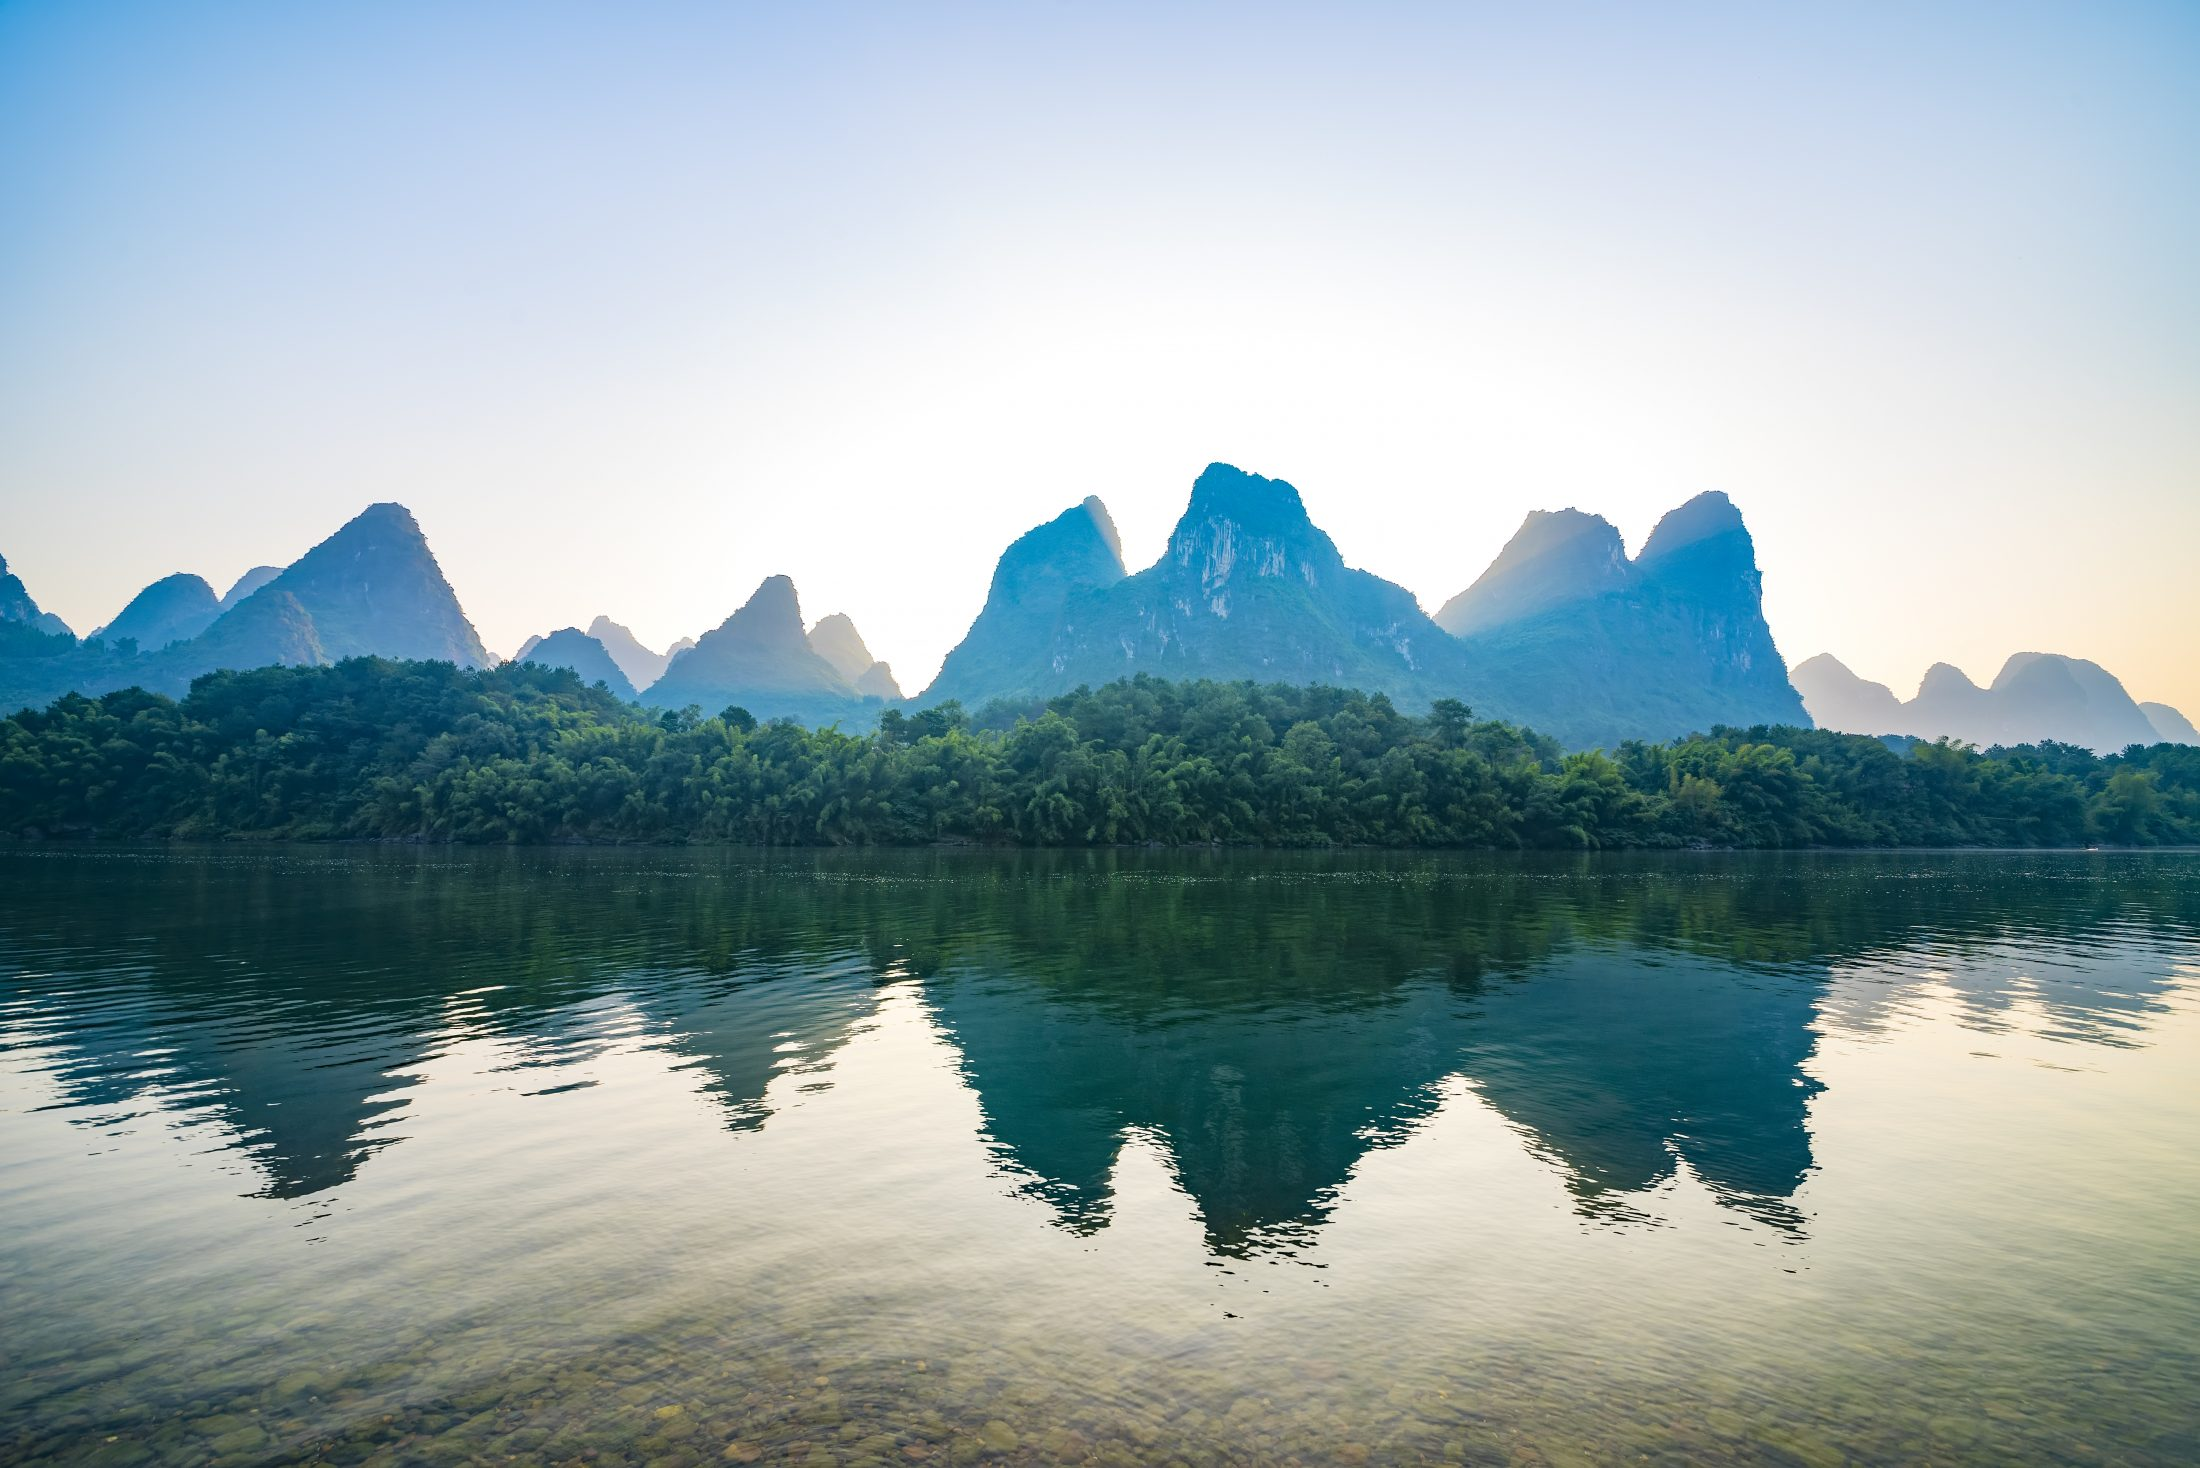 Picture of the Yangtze River with mountains in the background - China Travel